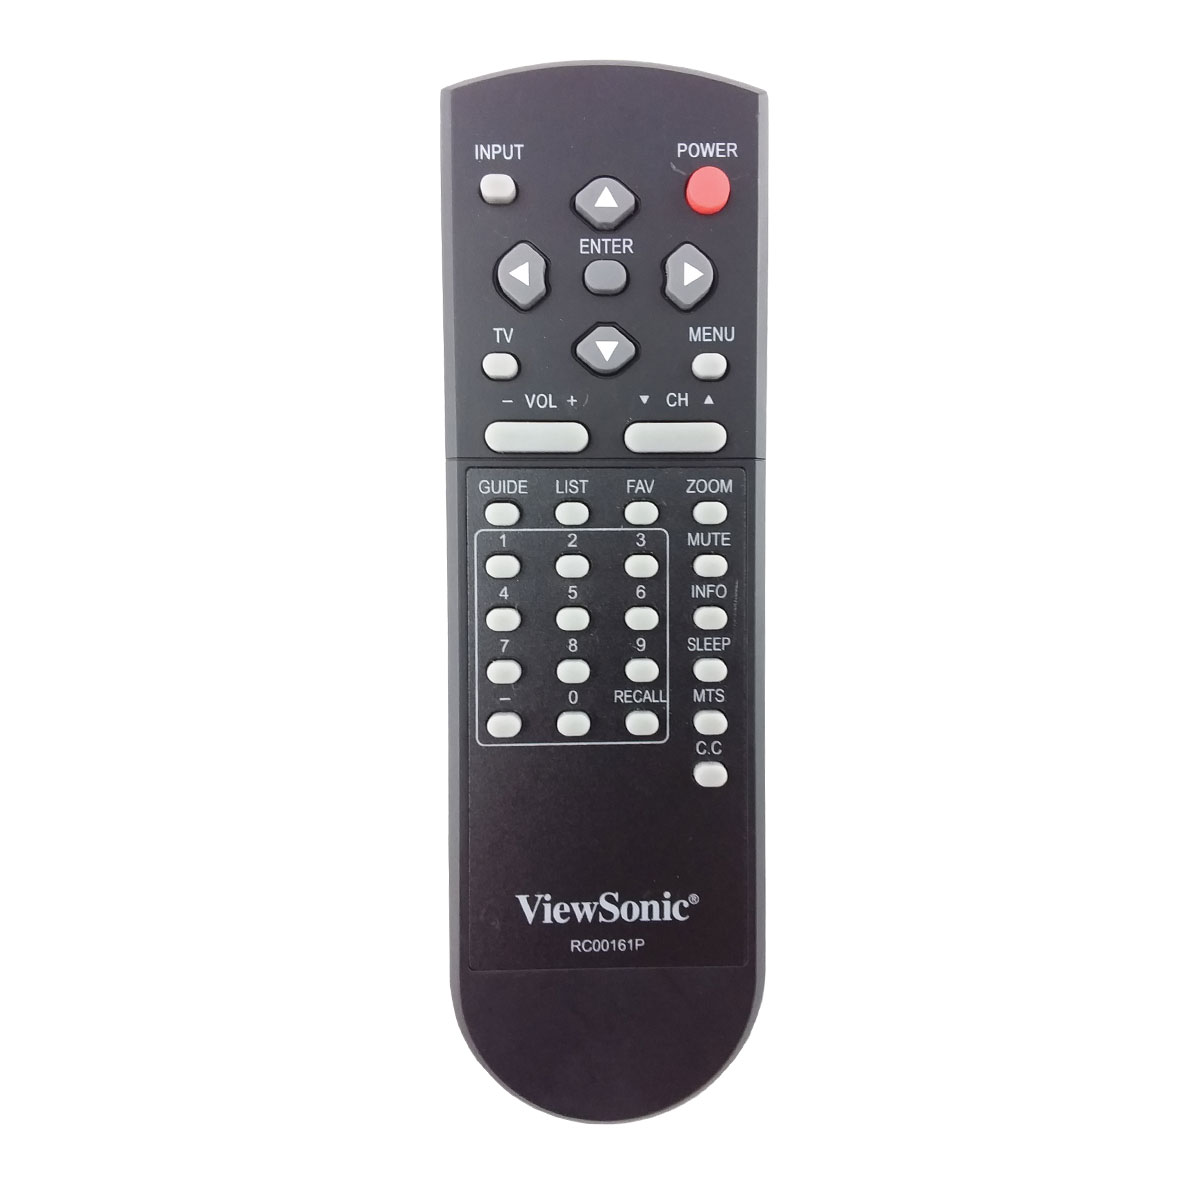 Original TV Remote Control for Viewsonic N1630W Television